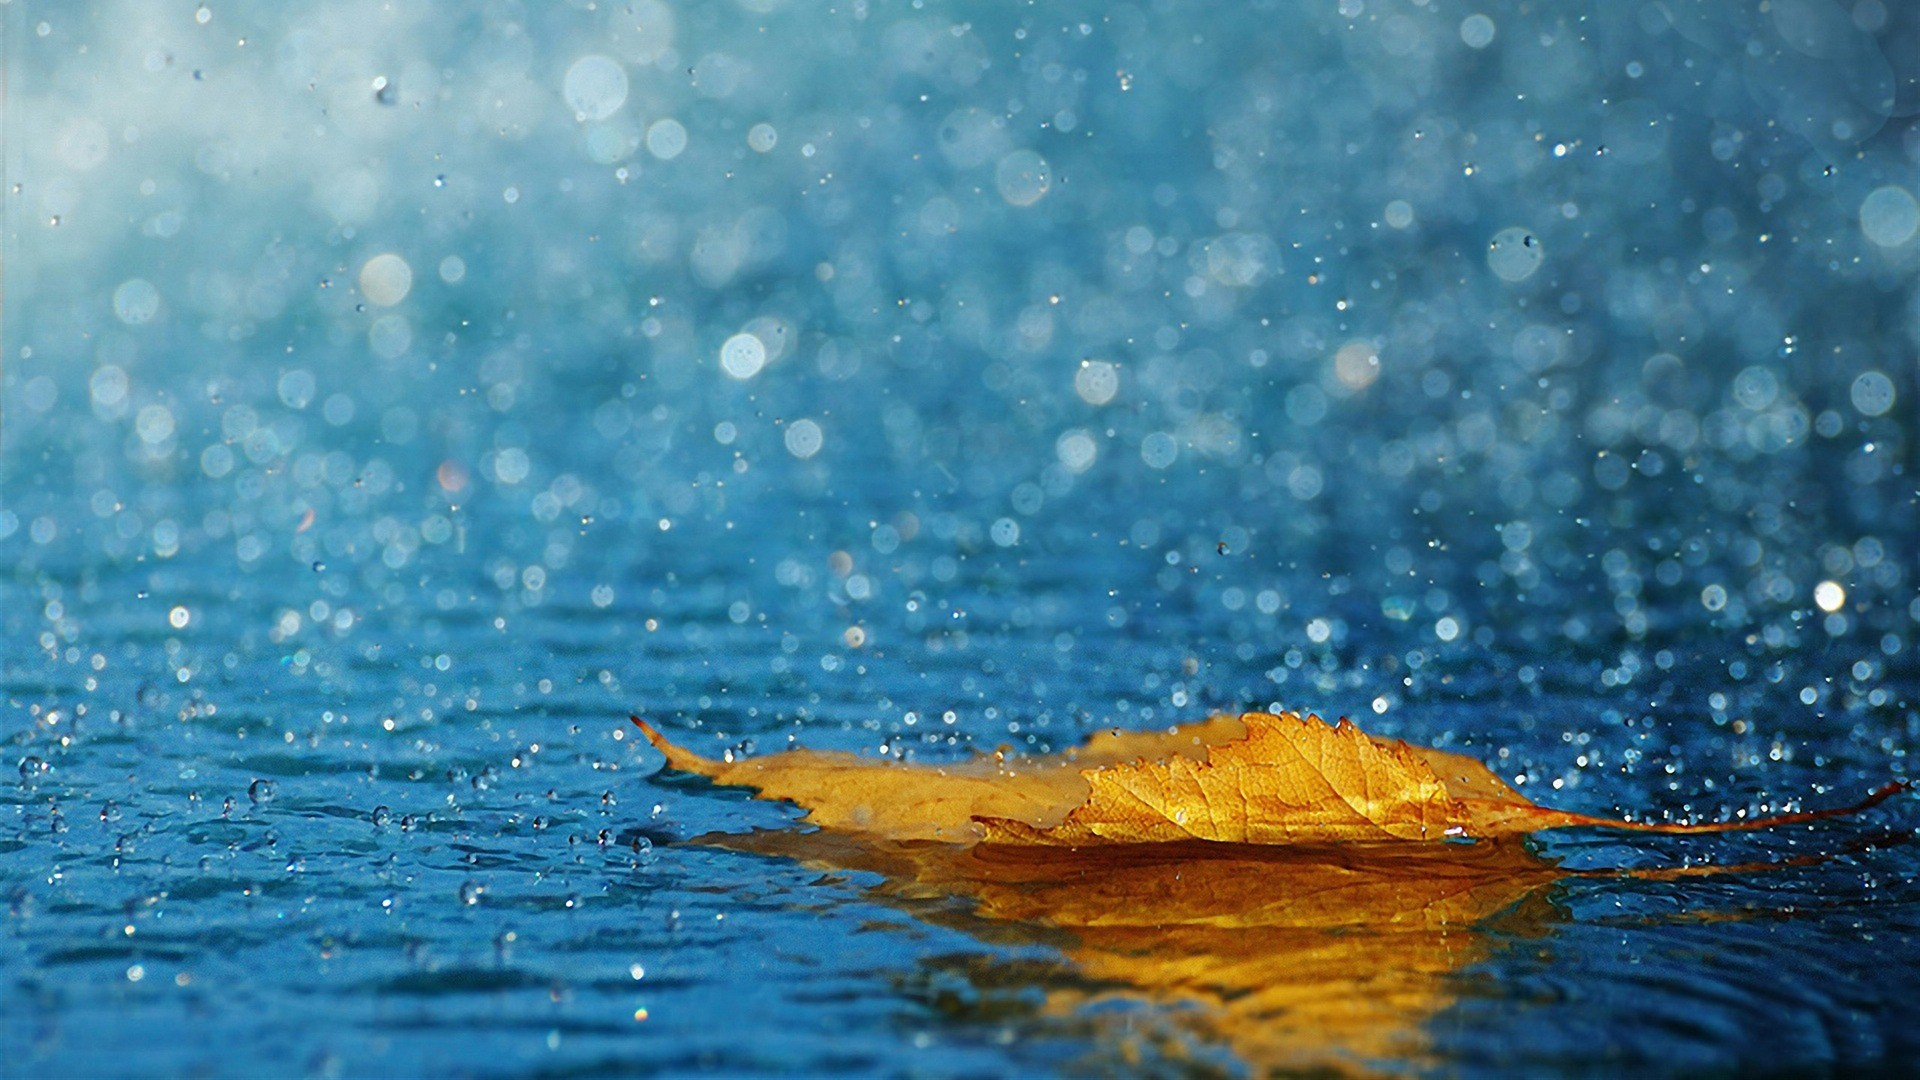 1920x1080 Rain drops in Summer - Top 10 HD Raindrop Wallpapers for Your Desktop